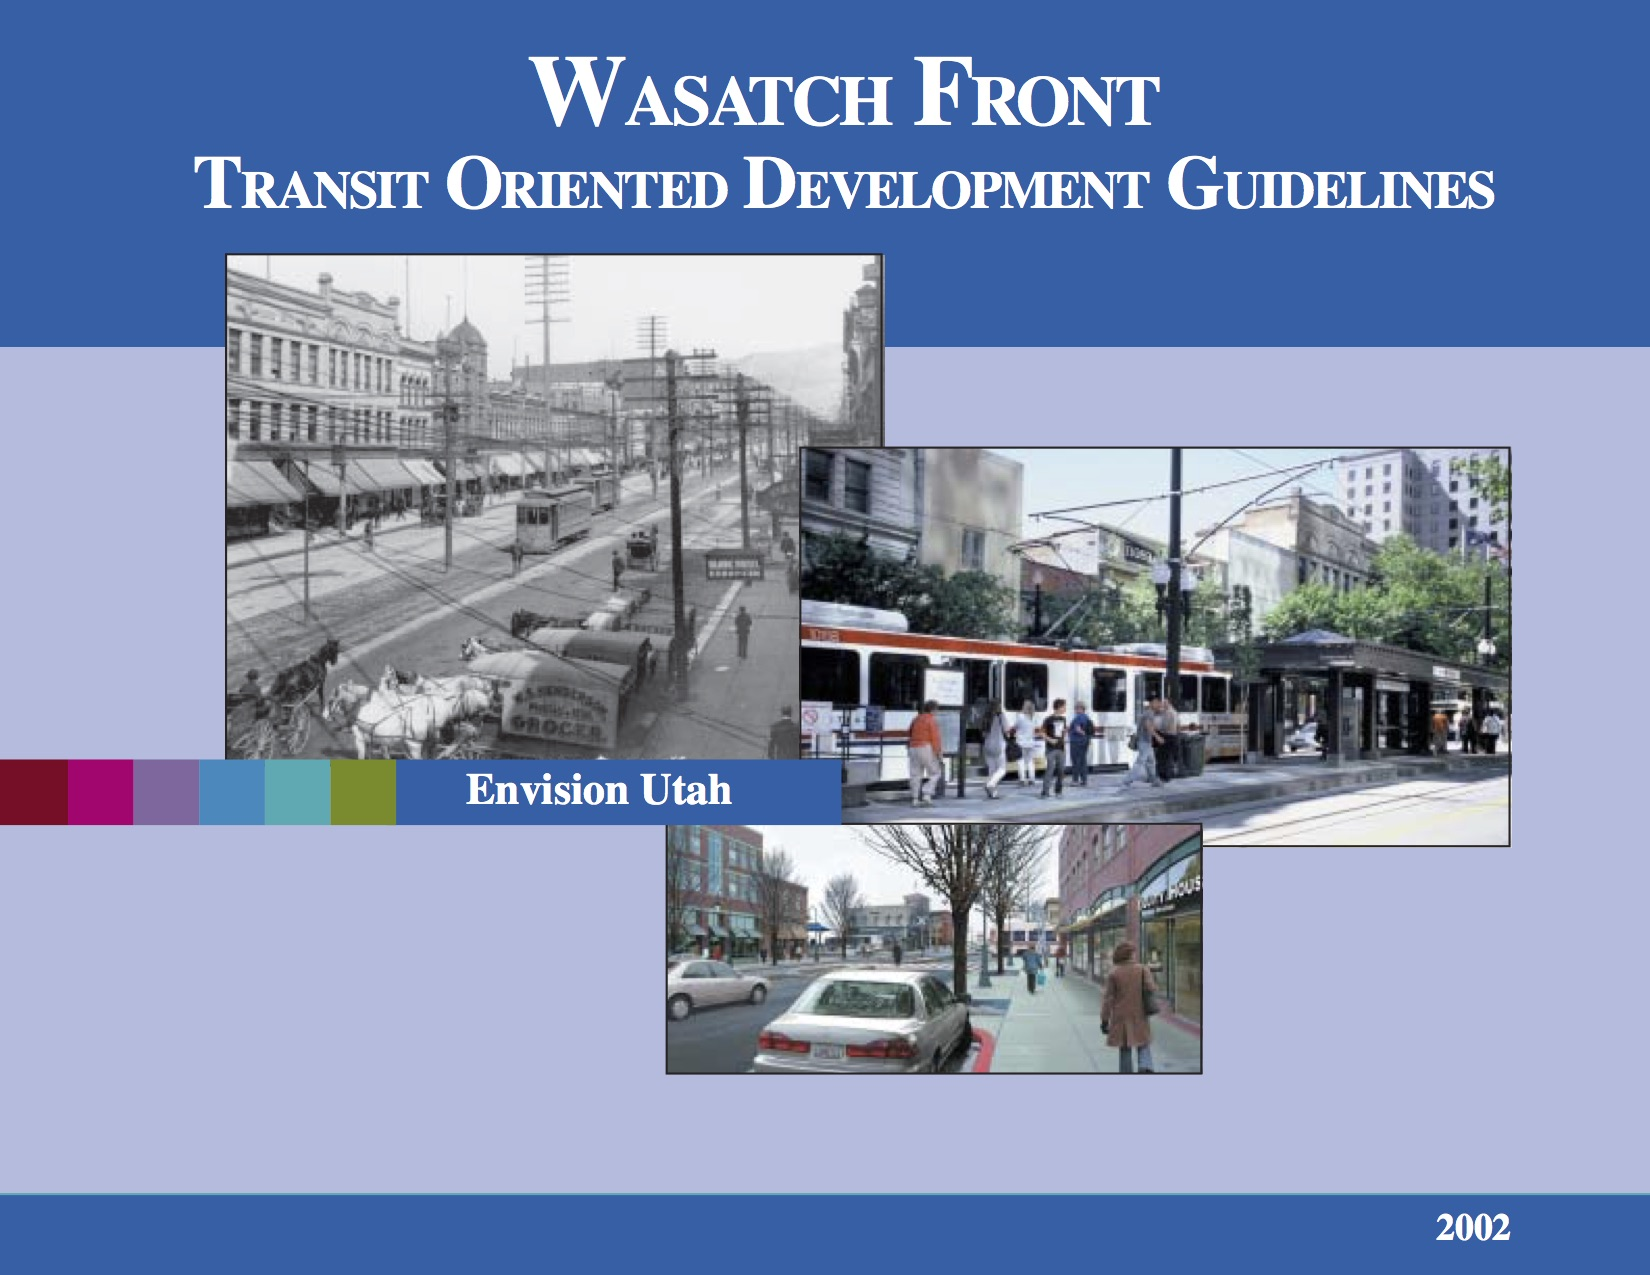 Wasatch Front Transit Oriented Development Guidelines